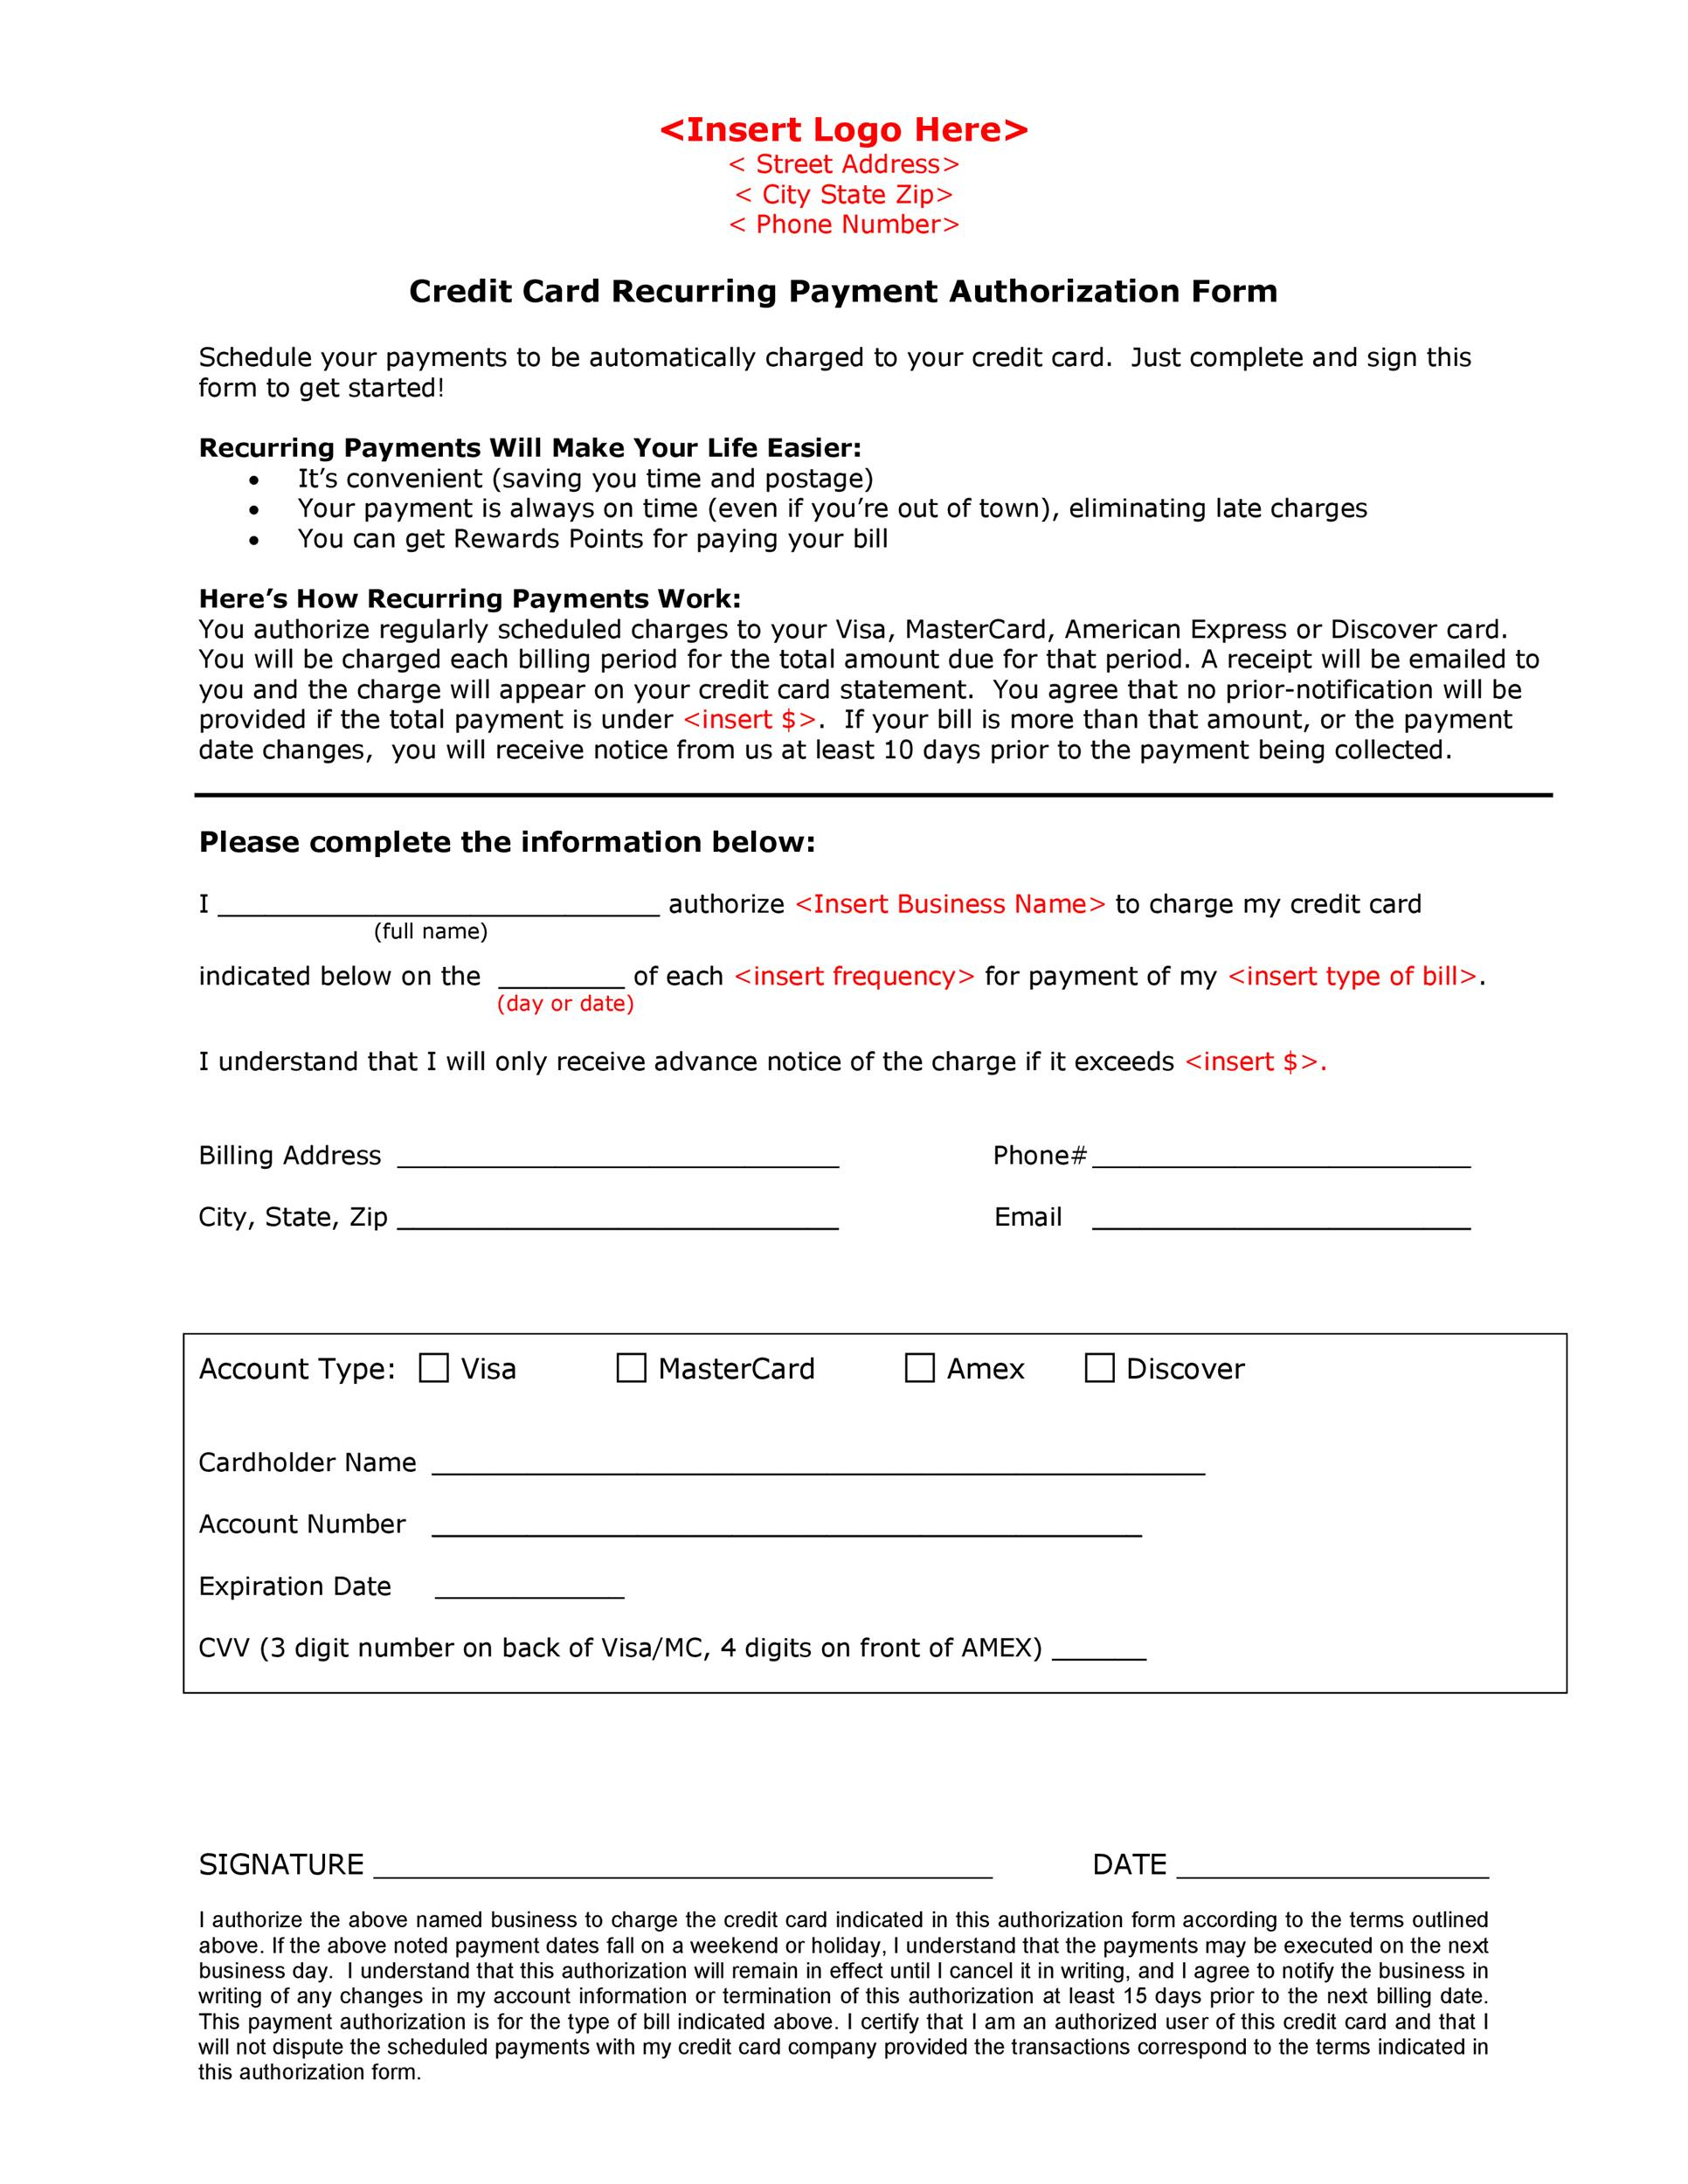 41 credit card authorization forms templates ready to use free credit card authorization form template 02 maxwellsz